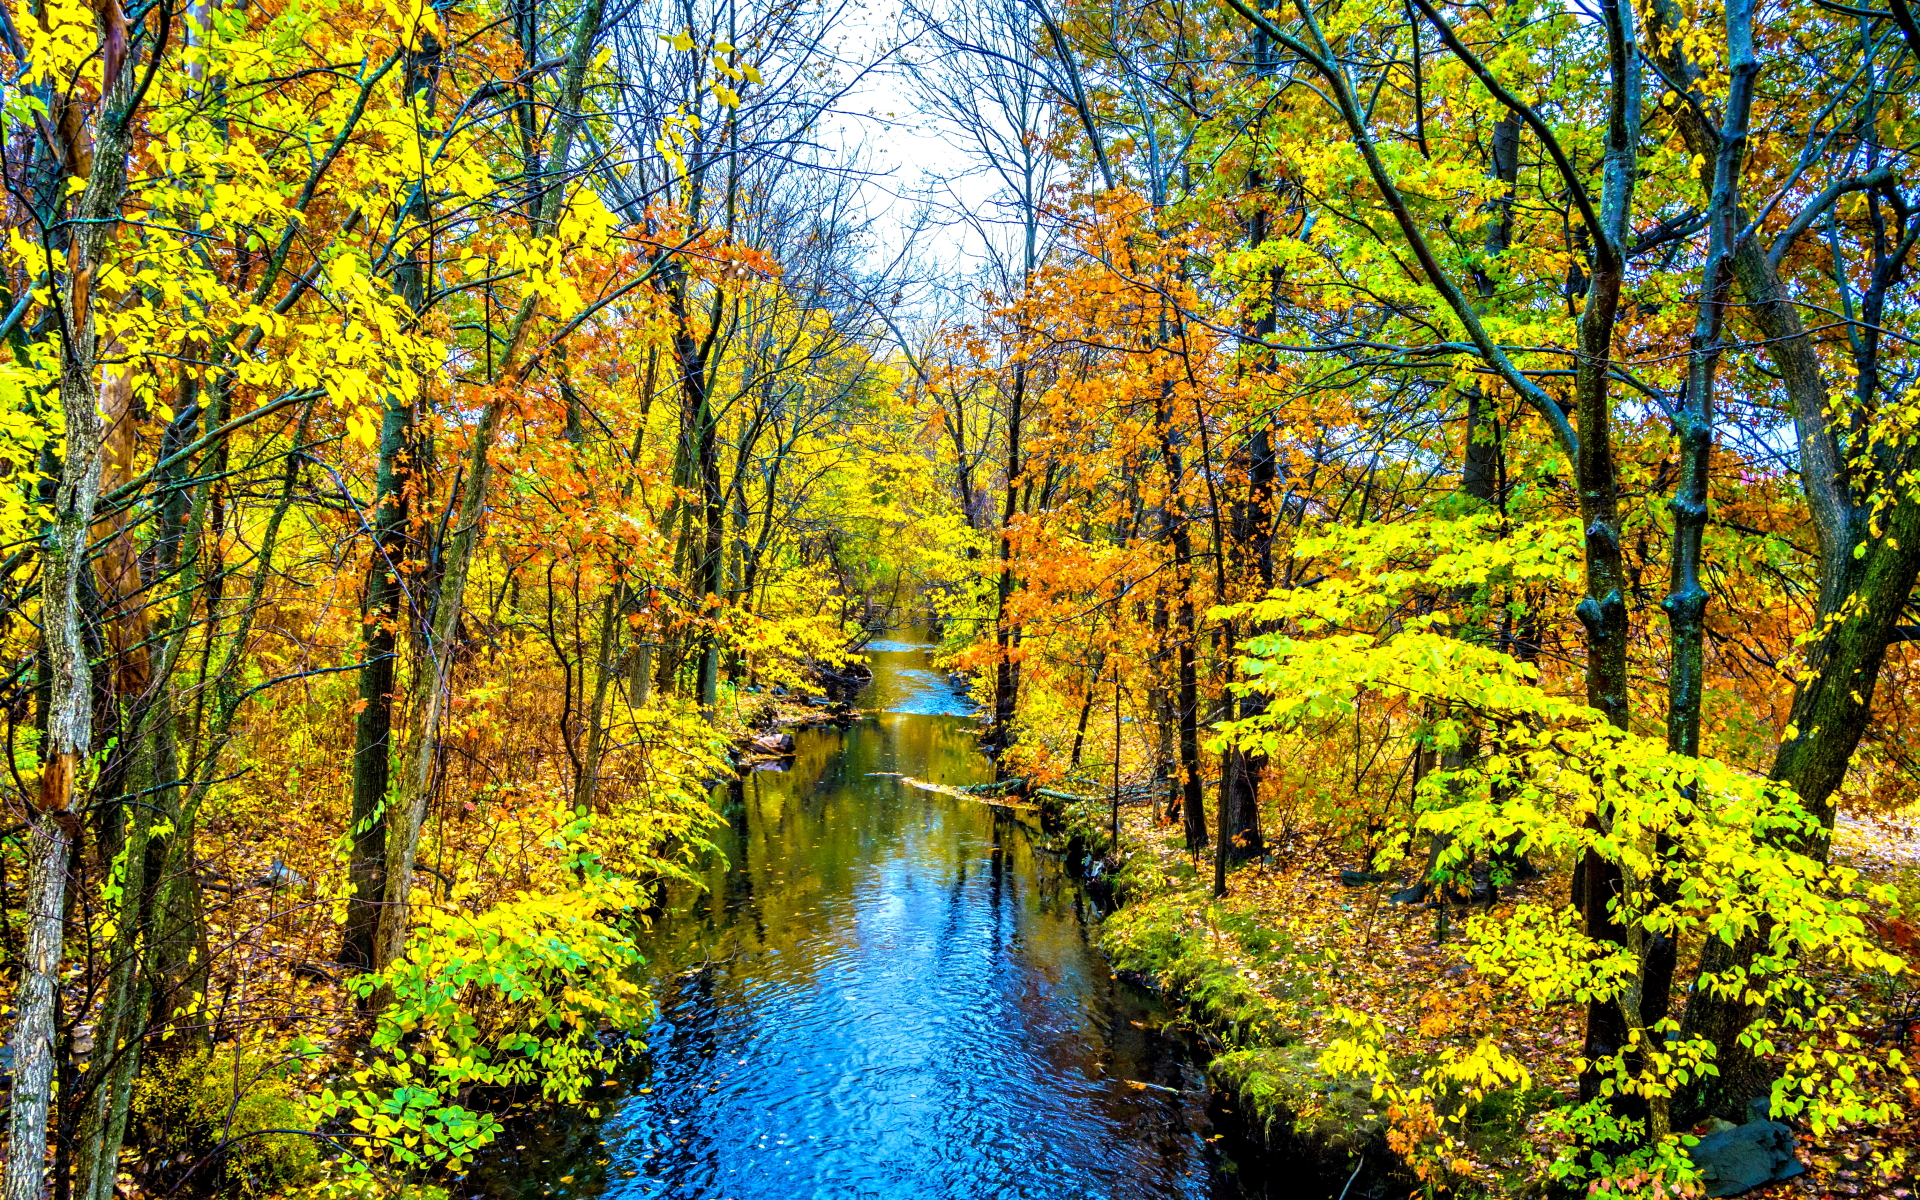 Fall Foliage Wallpaper 1920x1080 Bright Autumn Forest Amp Creek Wallpapers Bright Autumn